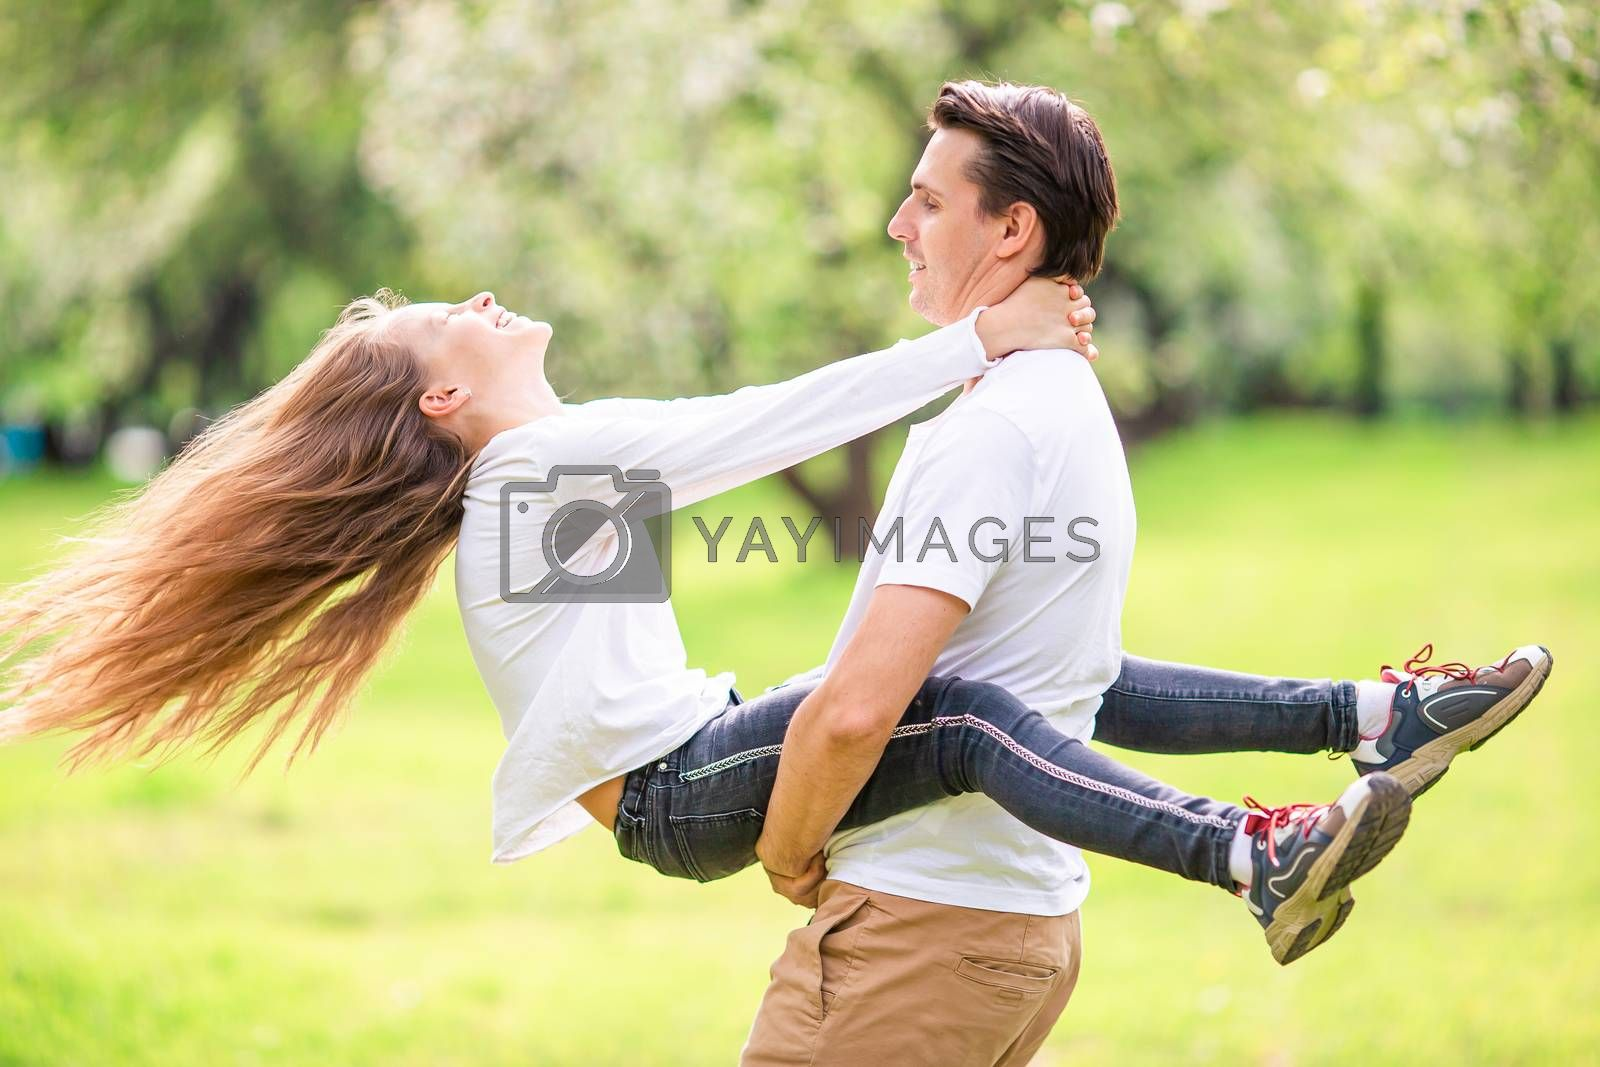 Family of dad and daughter with long hair having fun outdoors in the park